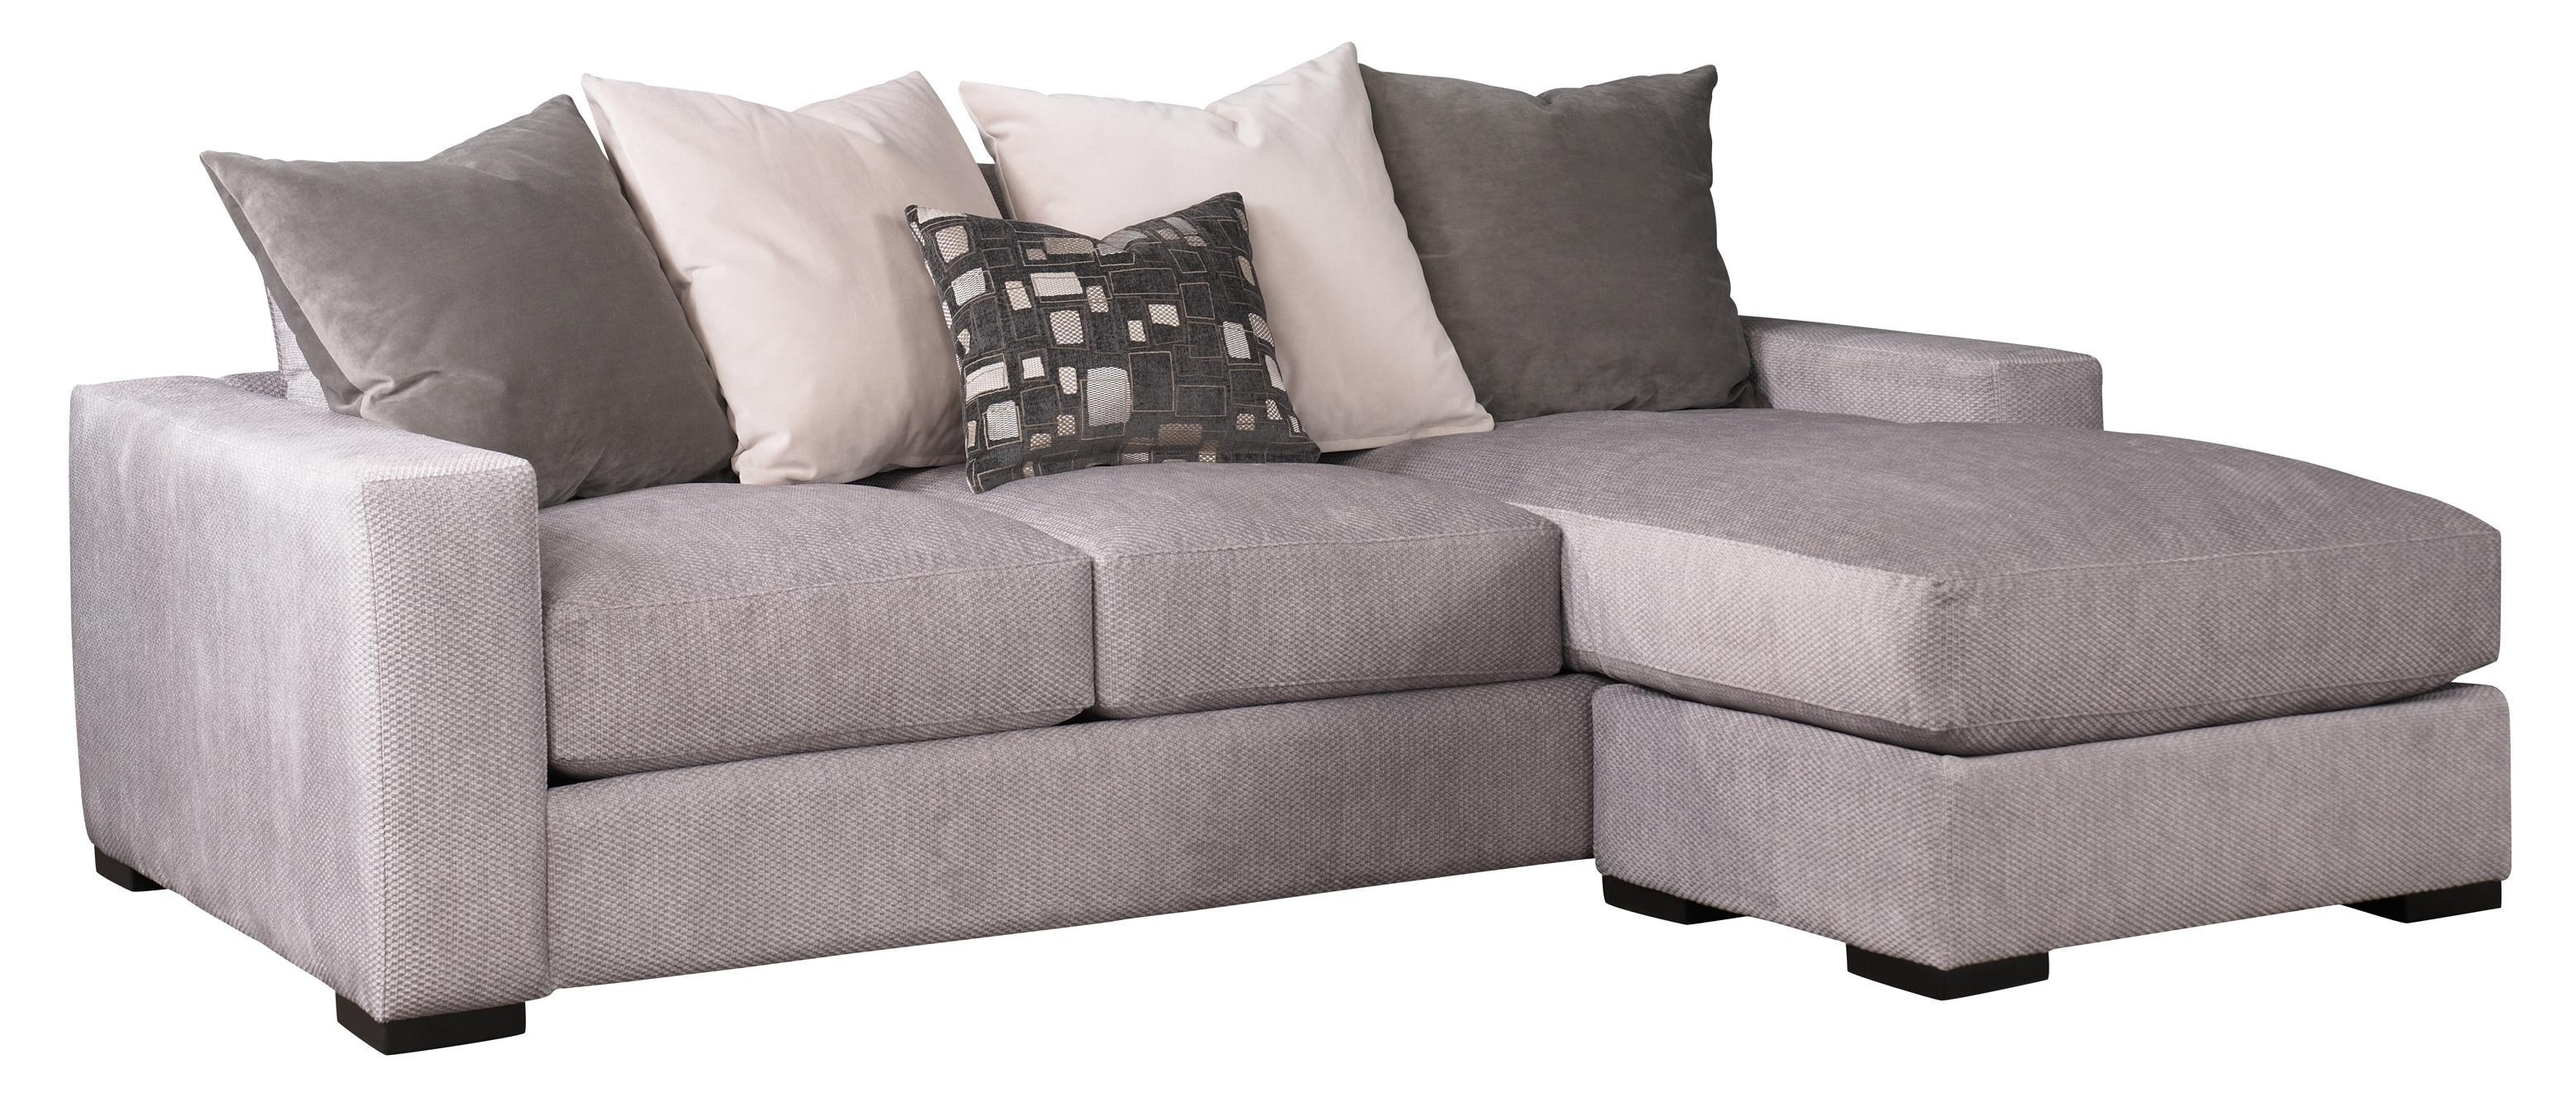 Jonathan Louis Lombardy Contemporary Sofa W/ Reversible Chaise in Jonathan Sofa